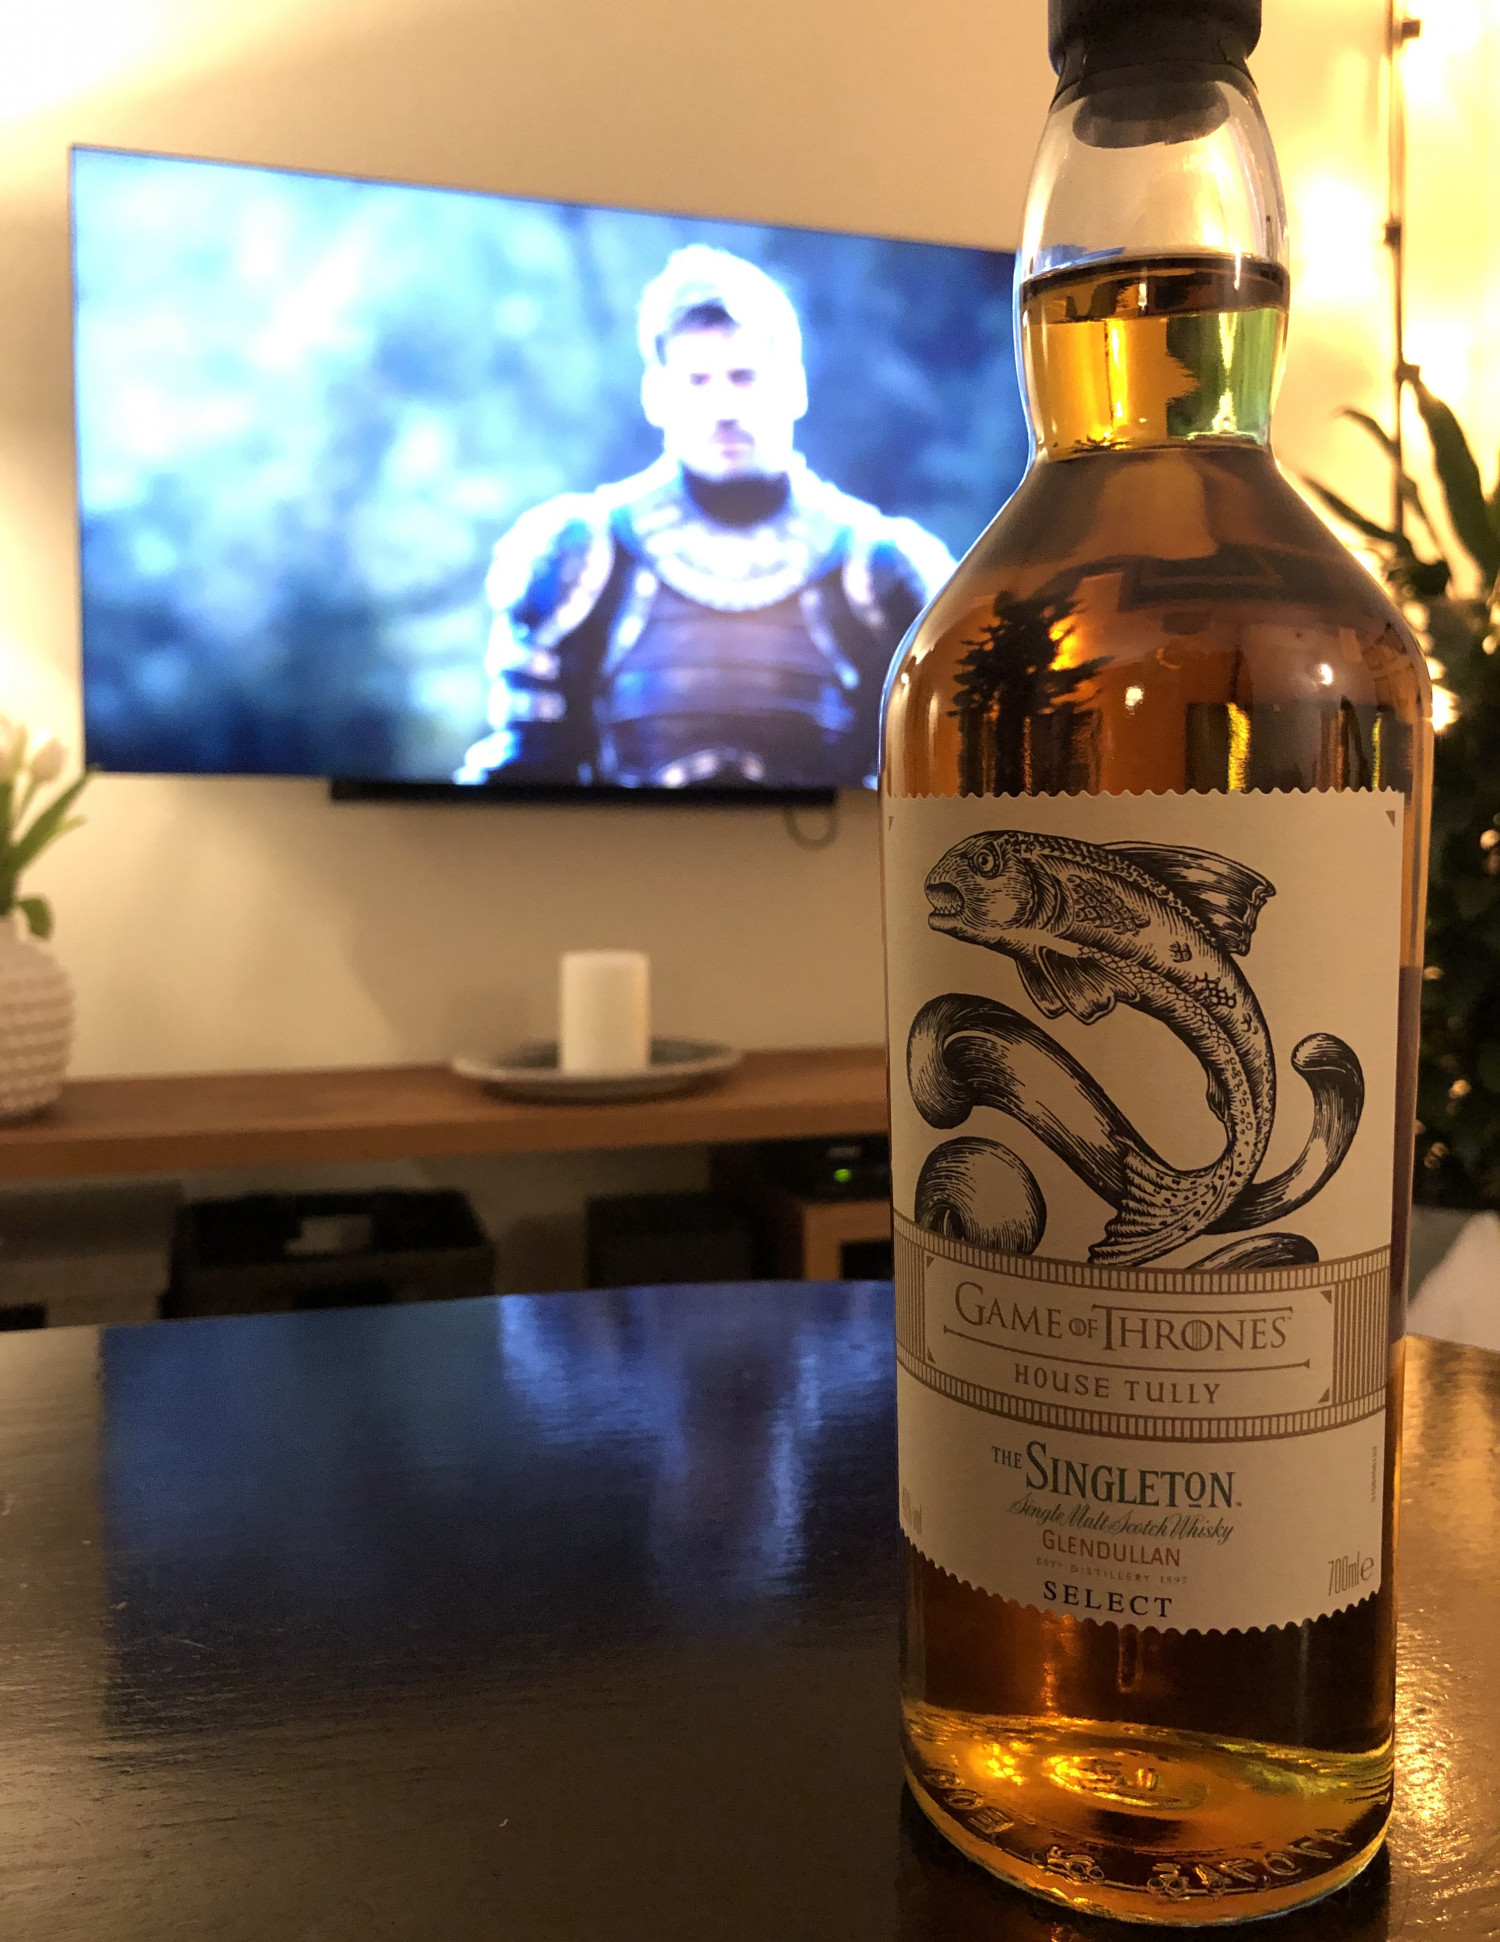 Game of Thrones Limited Edition The Singleton of Glendullan Select